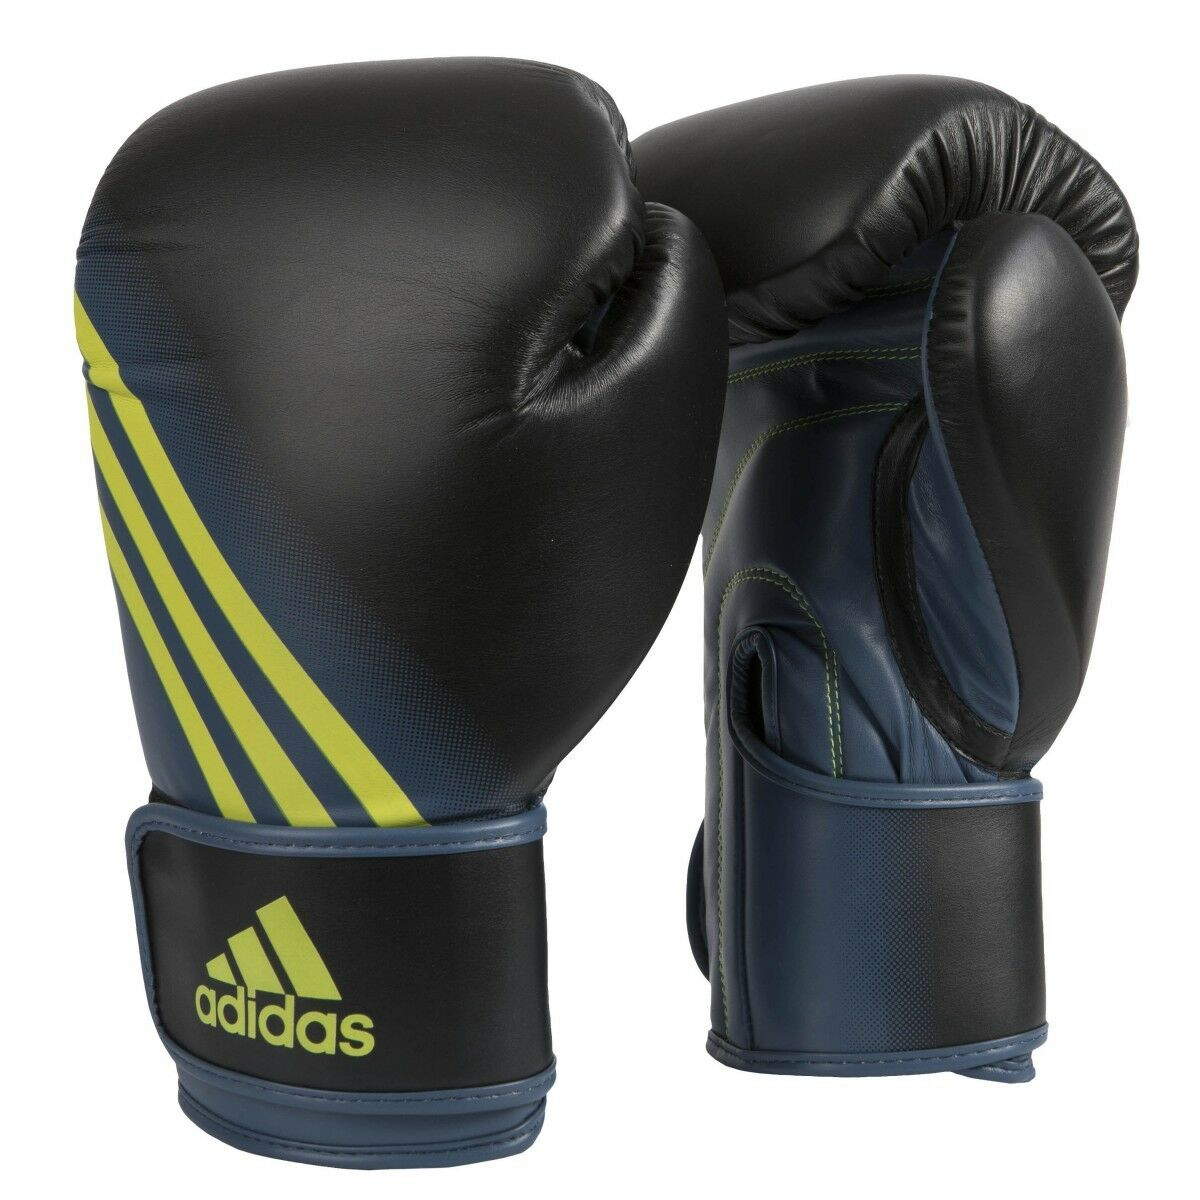 Adidas  Leather Boxing G s Sparring Speed 200  high-quality merchandise and convenient, honest service